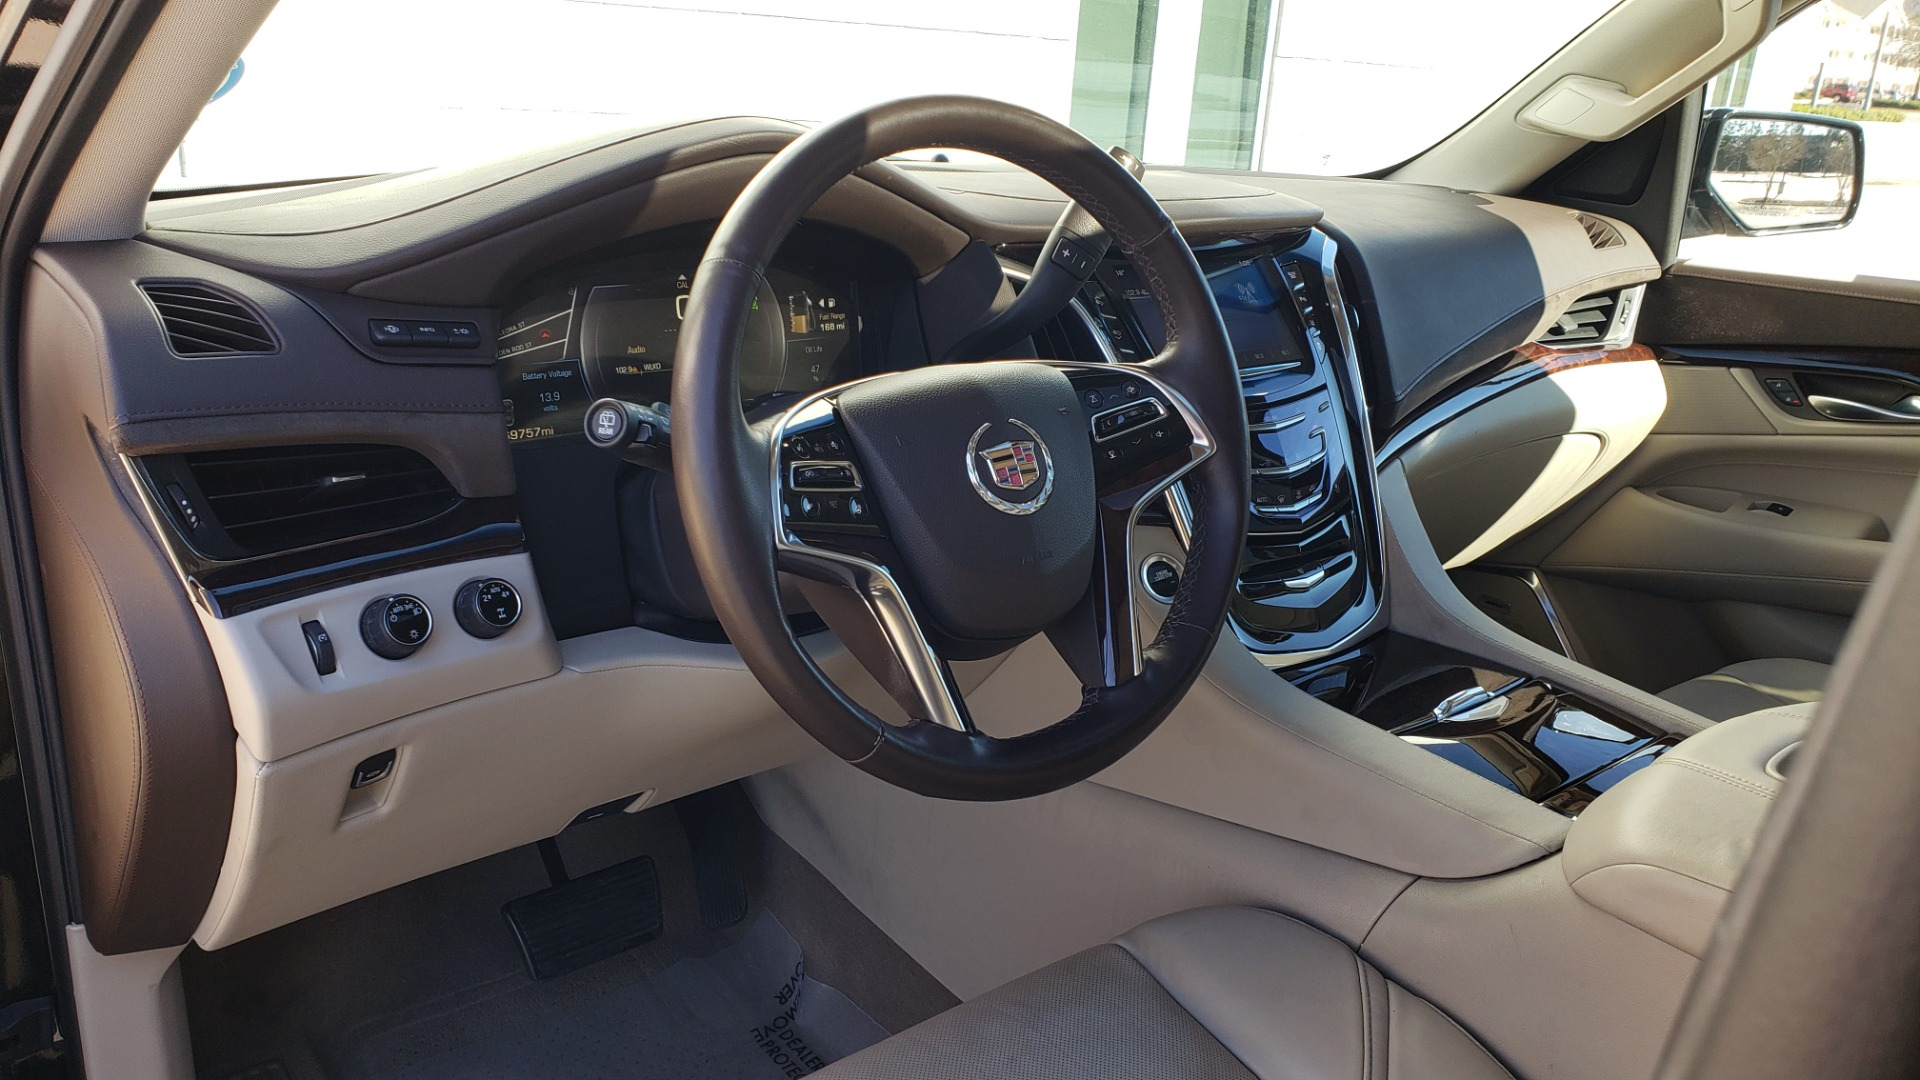 Used 2015 Cadillac ESCALADE PREMIUM 4WD / NAV / SUNROOF / REARVIEW / 3-ROW for sale Sold at Formula Imports in Charlotte NC 28227 38